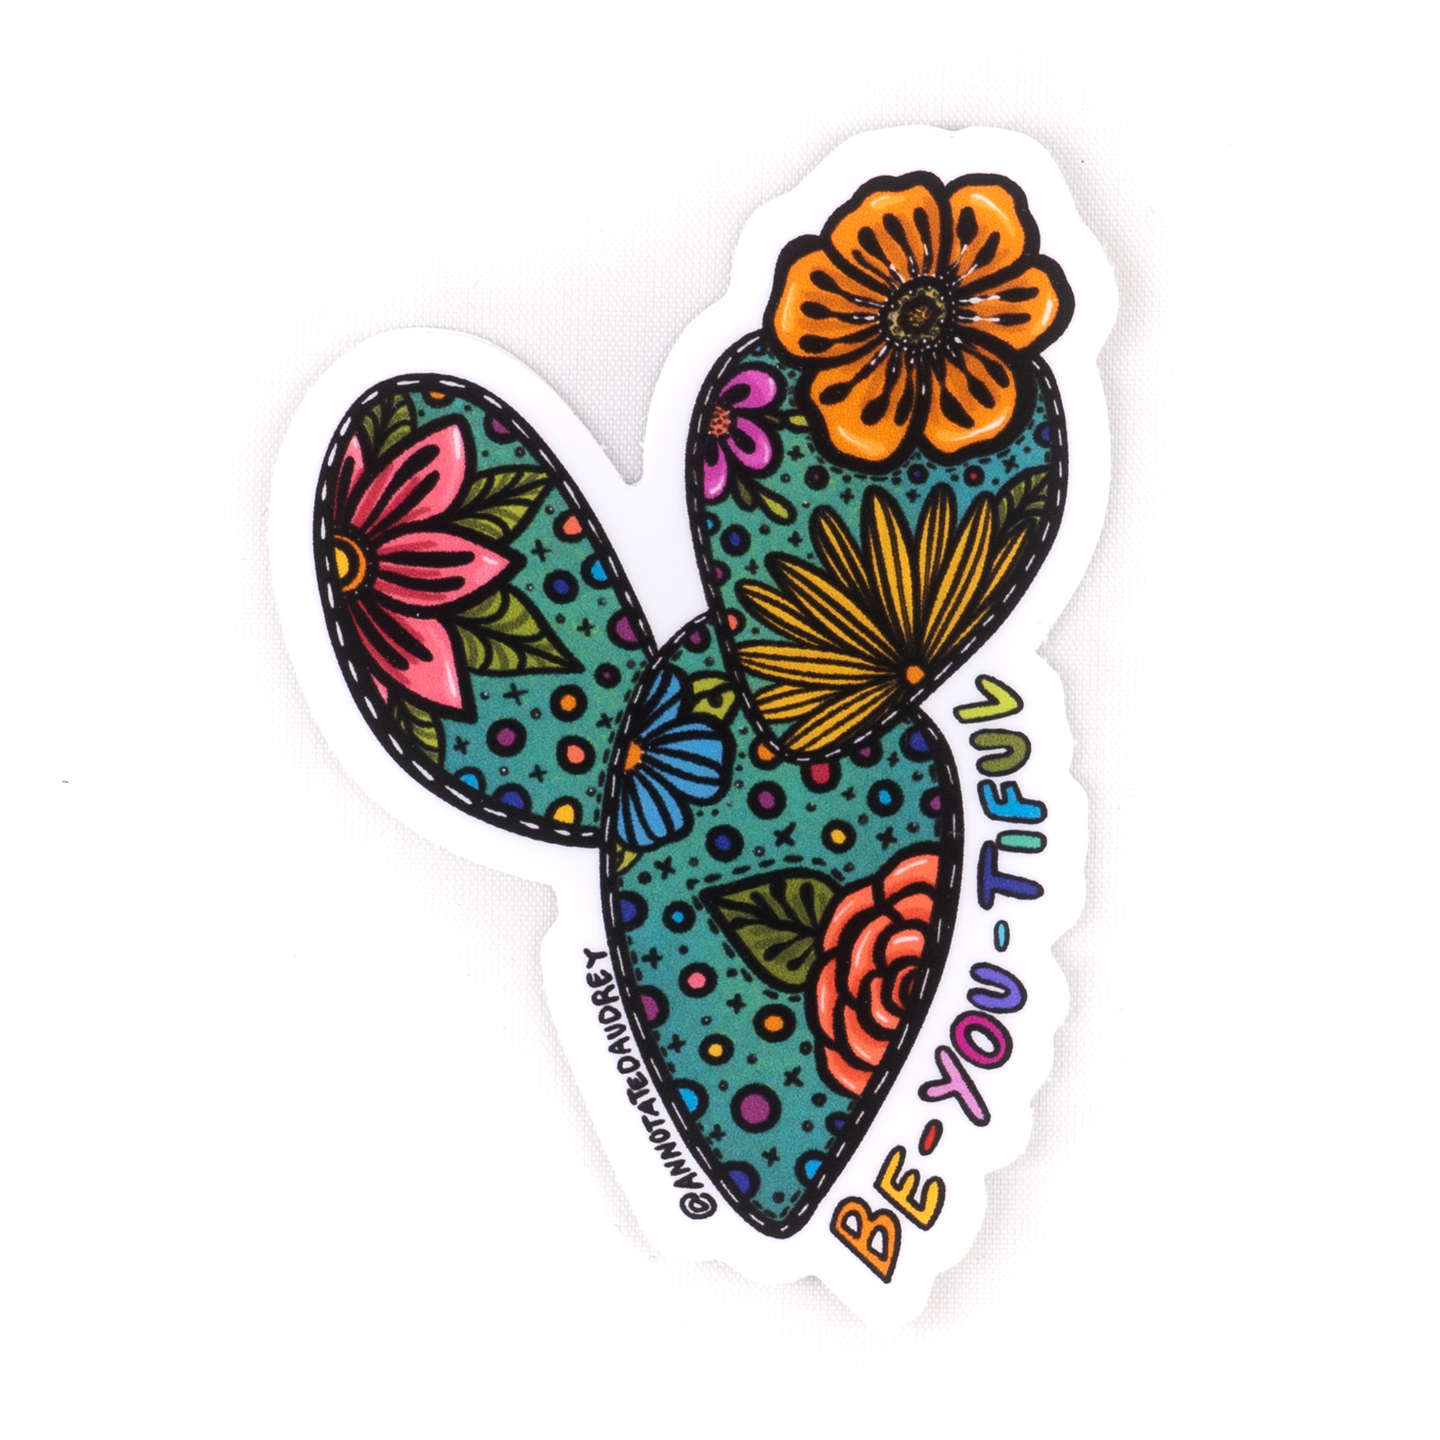 Be-you-tiful Cactus With Flowers Sticker